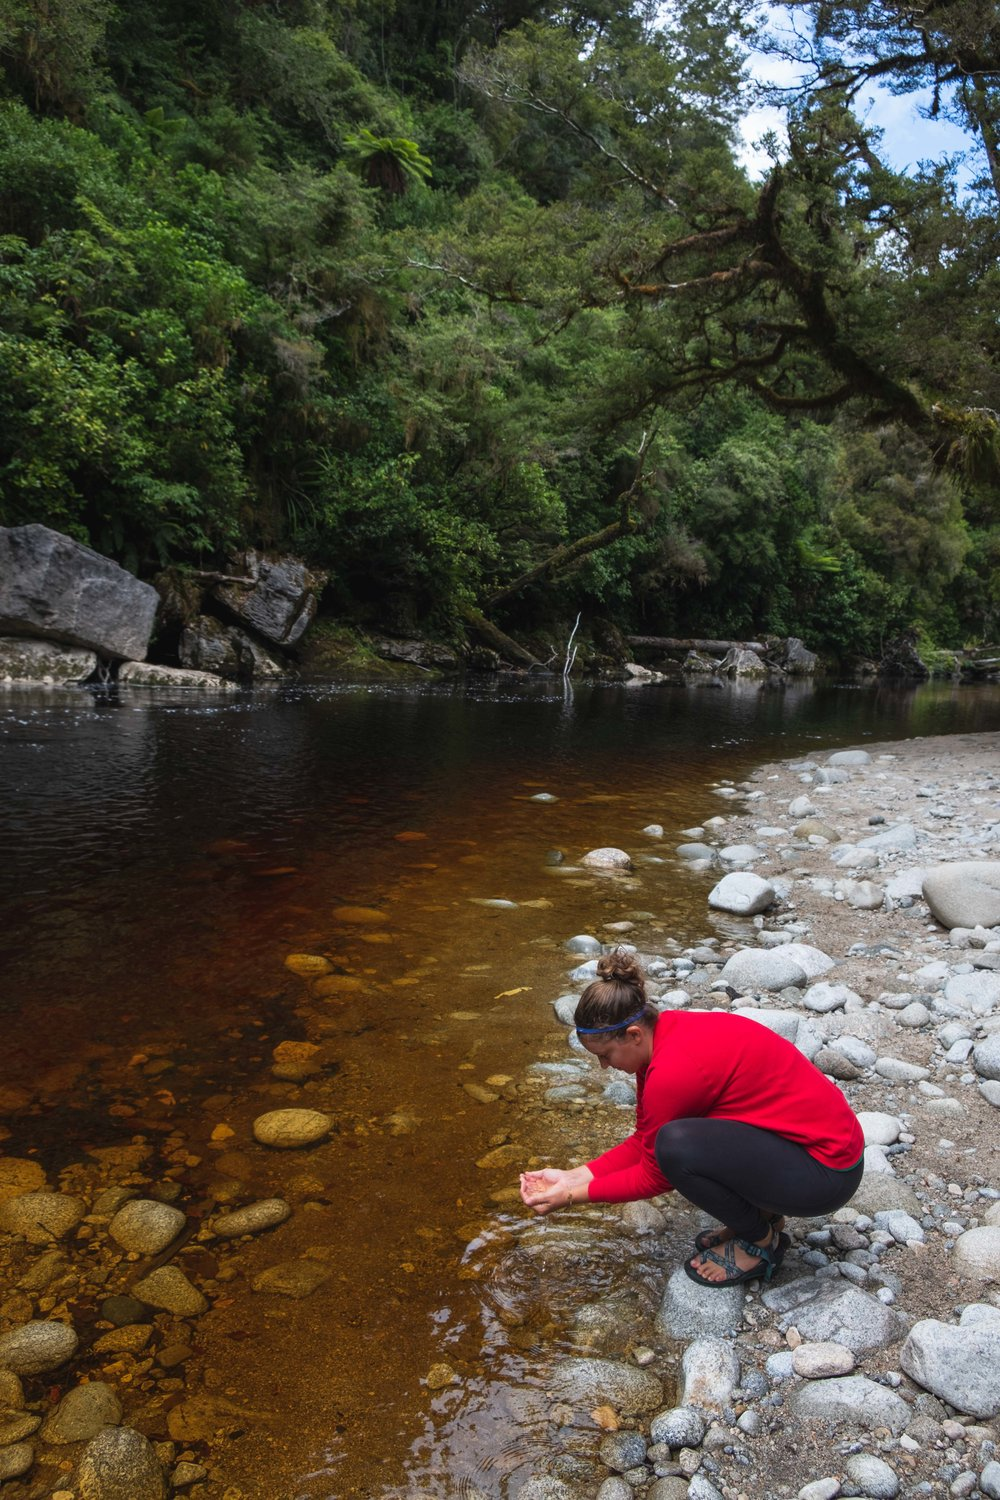 Touching the clear, brown water. Weirdly cool.